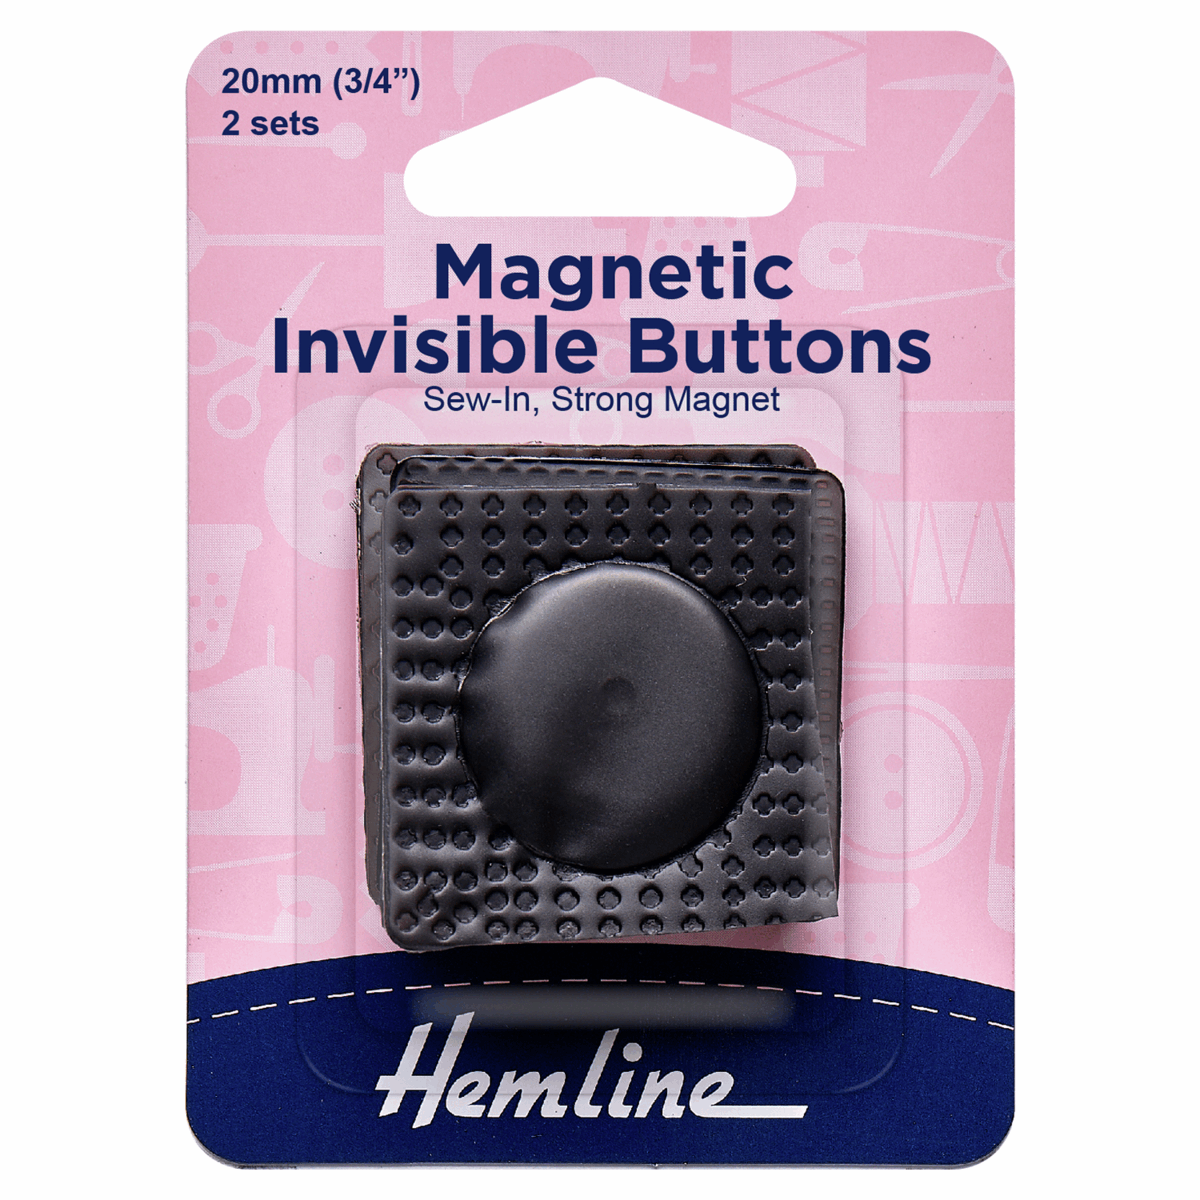 Hemline 2 x 20mm Magnetic Invisible Buttons Sew In Black